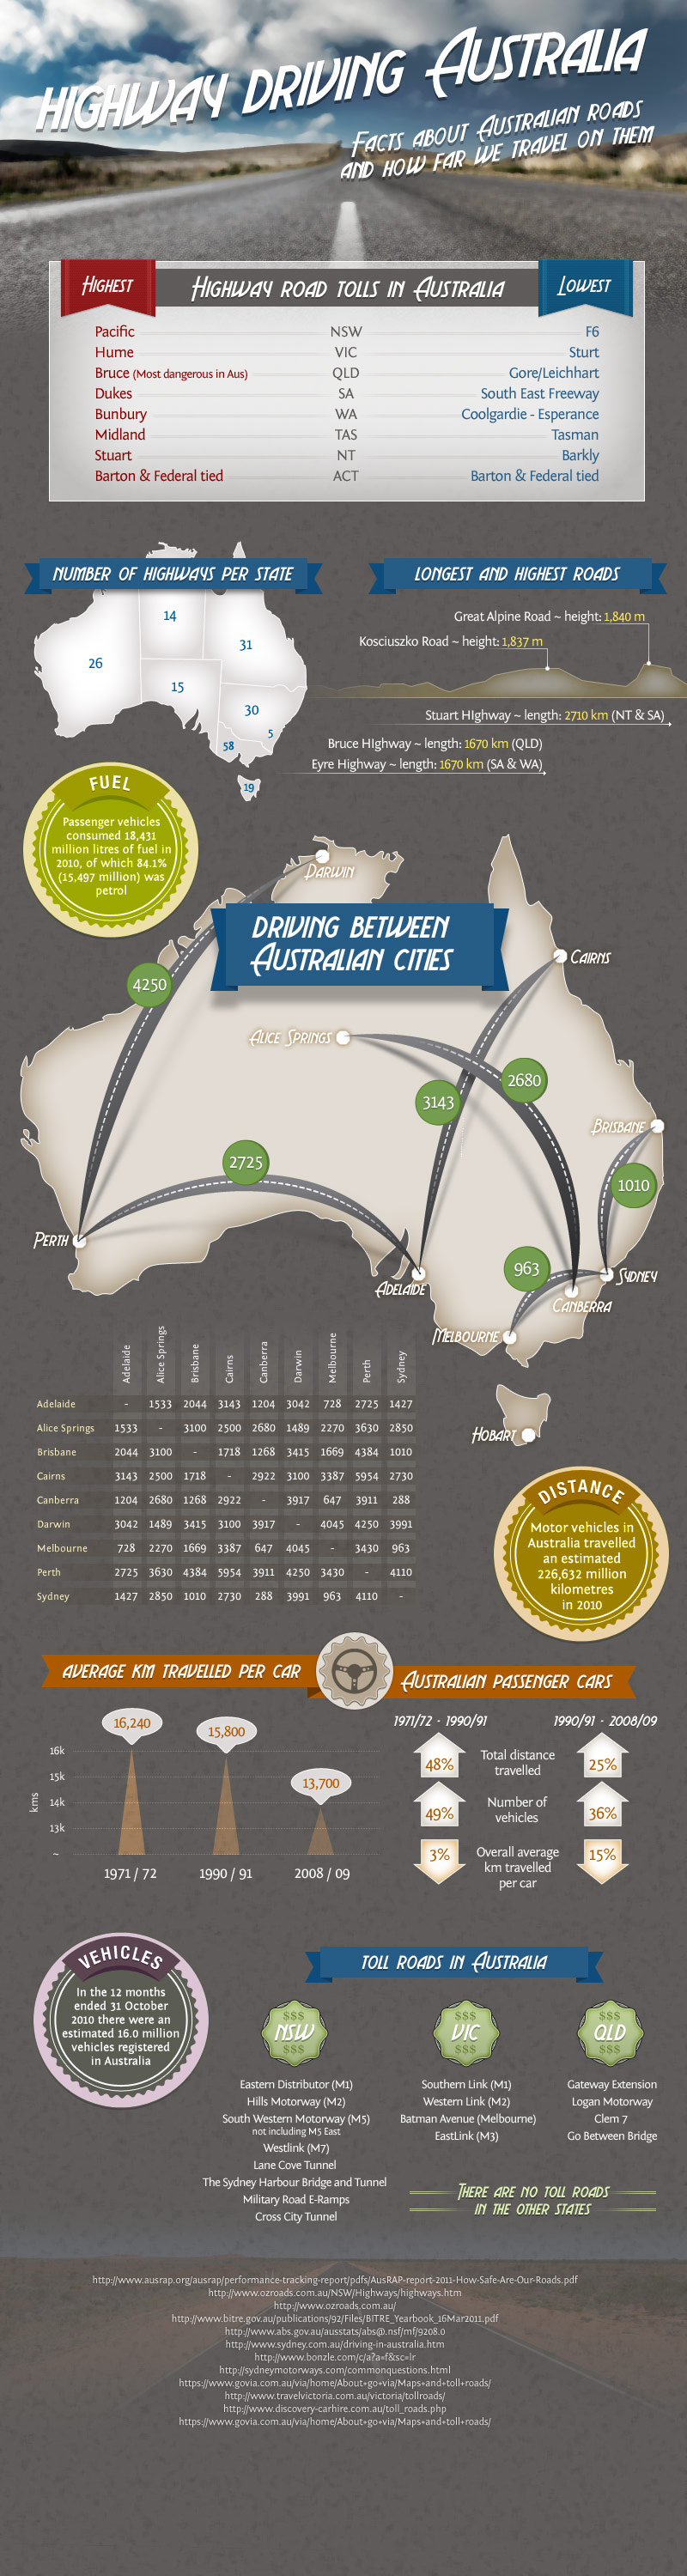 Highway driving in Australia infographic. Highest roads, longest roads, distance between Australian capitals, road tolls and more.